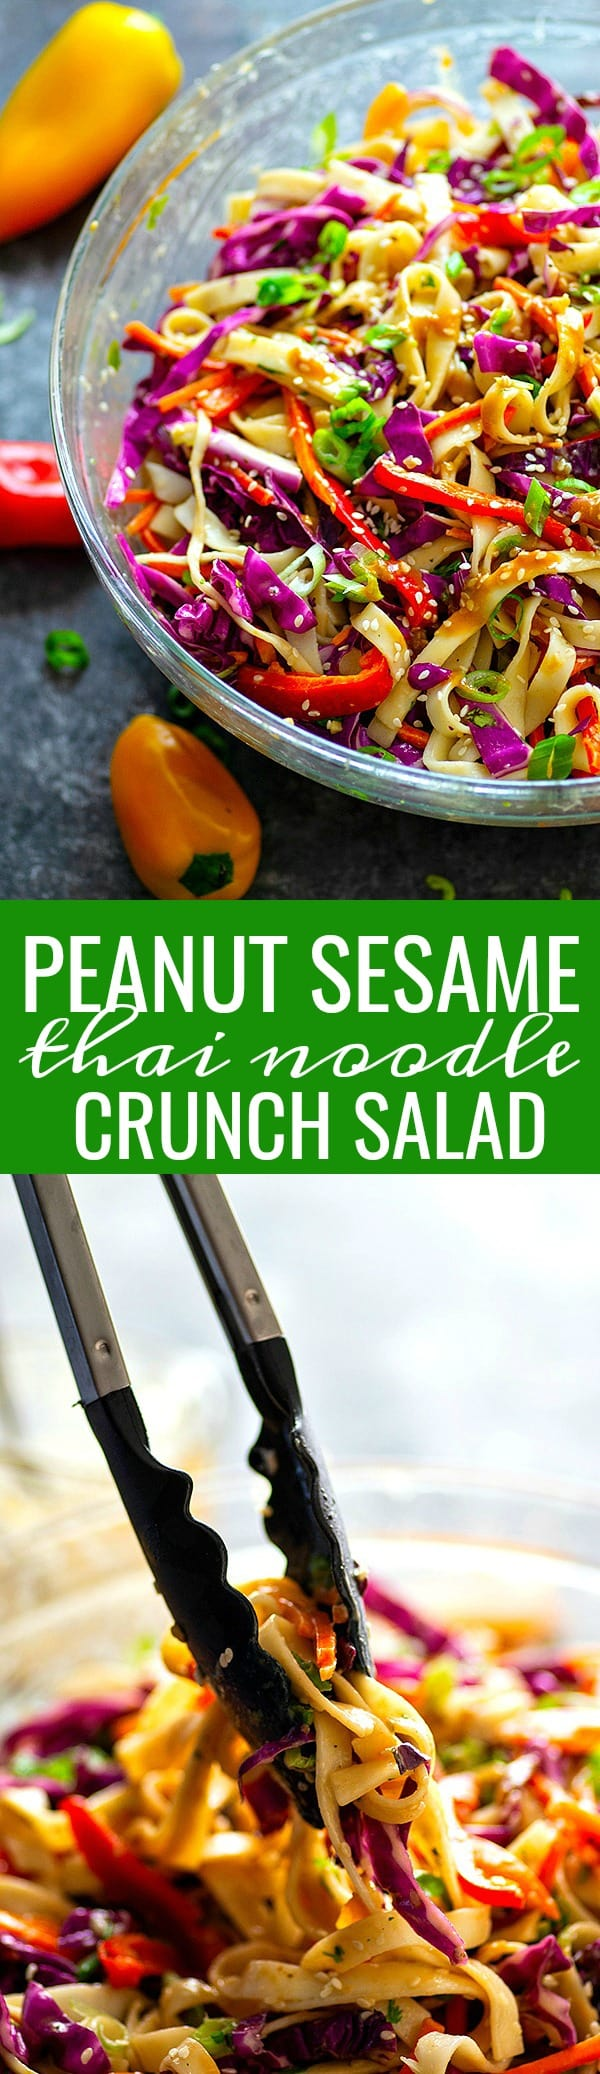 Tossed in a sweet peanut sesame dressing and loaded with TONS of awesome crunch, this peanut sesame thai noodle crunch salad is everything you could ever want in a summer salad!